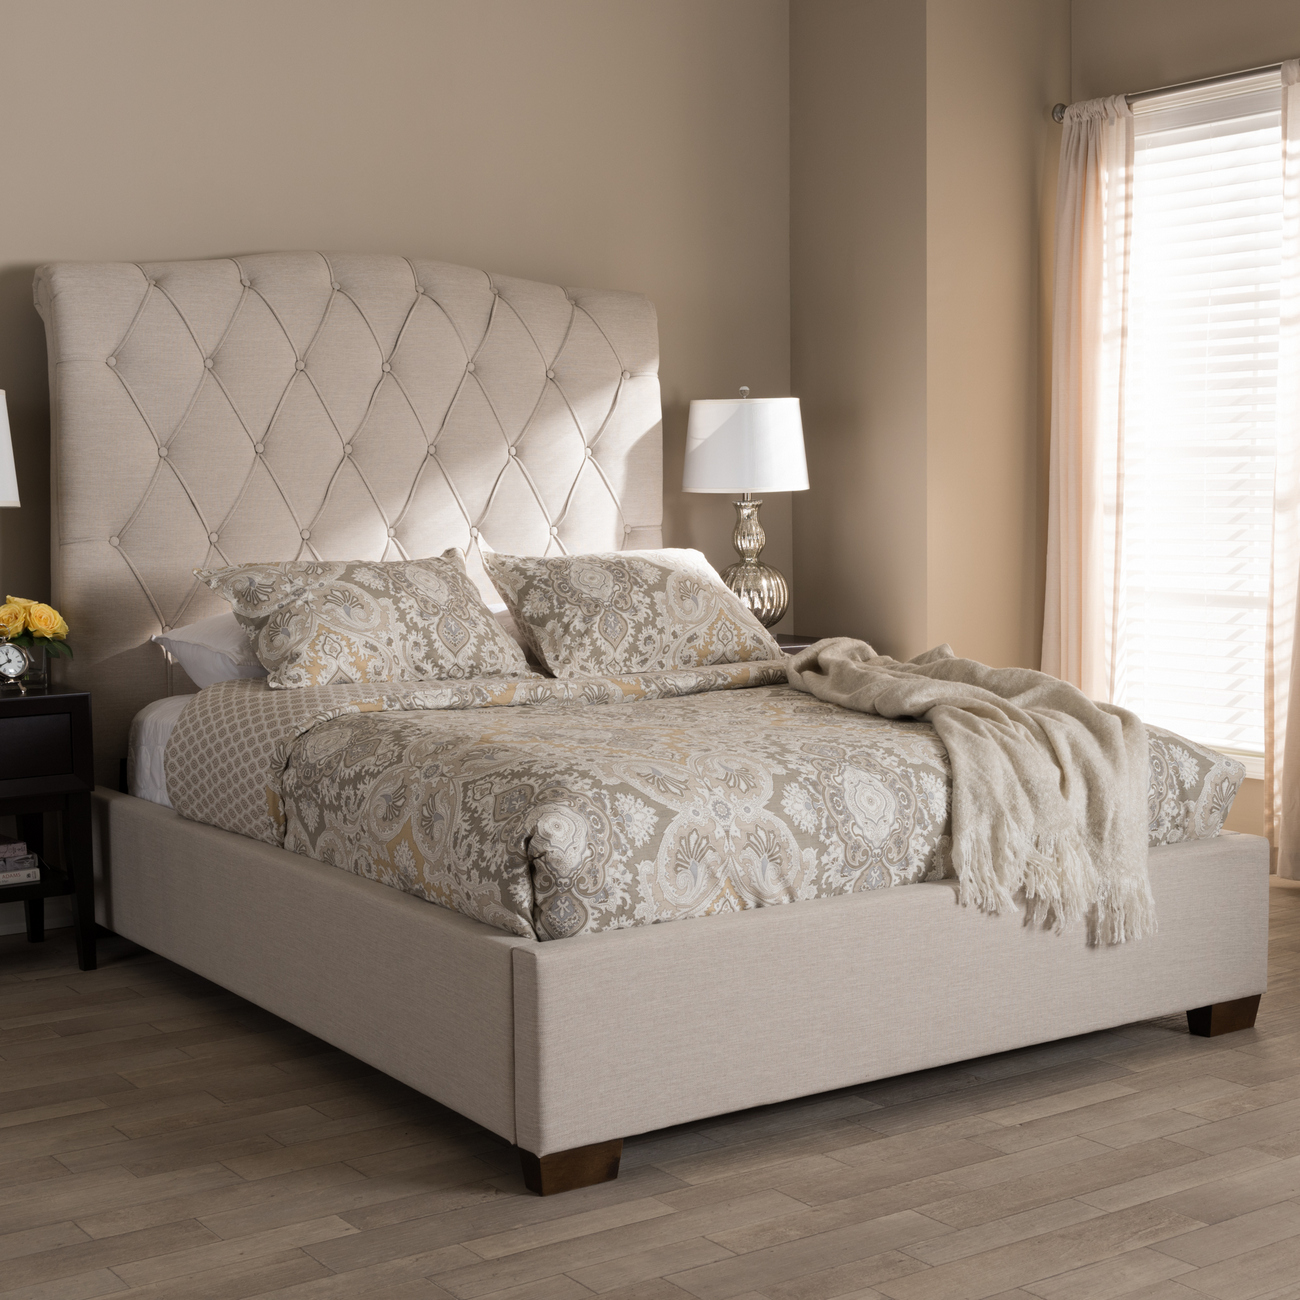 Wholesale Interiors Upholstered Platform Bed Queen